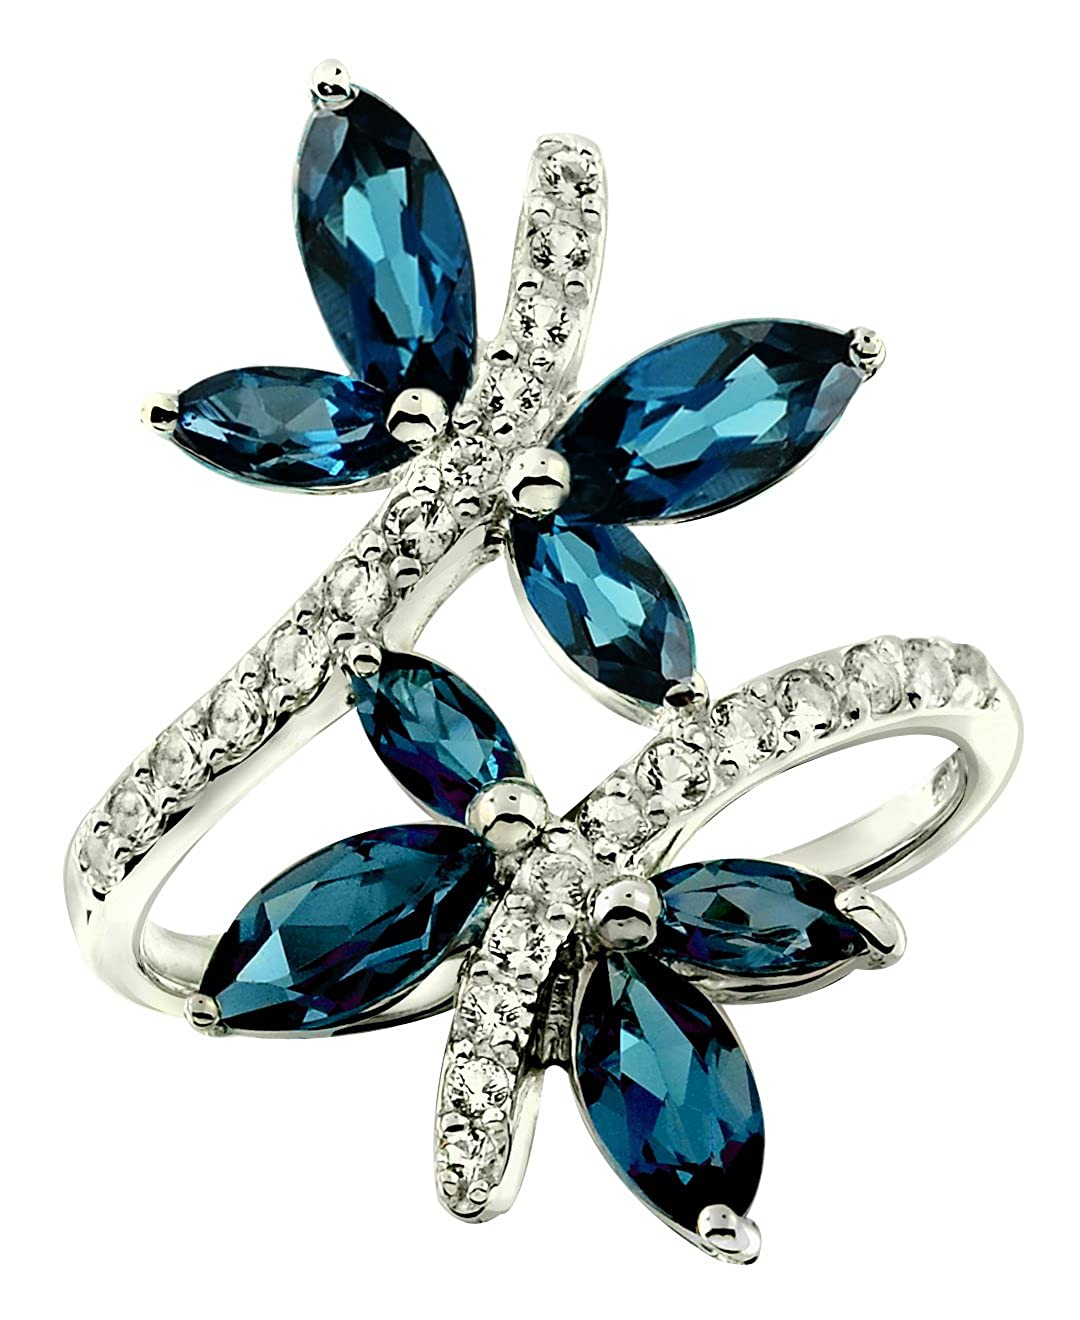 RB Gems Sterling Silver 925 Ring GENUINE GEMSTONE DRAGONFLY Design with Rhodium-Plated Finish